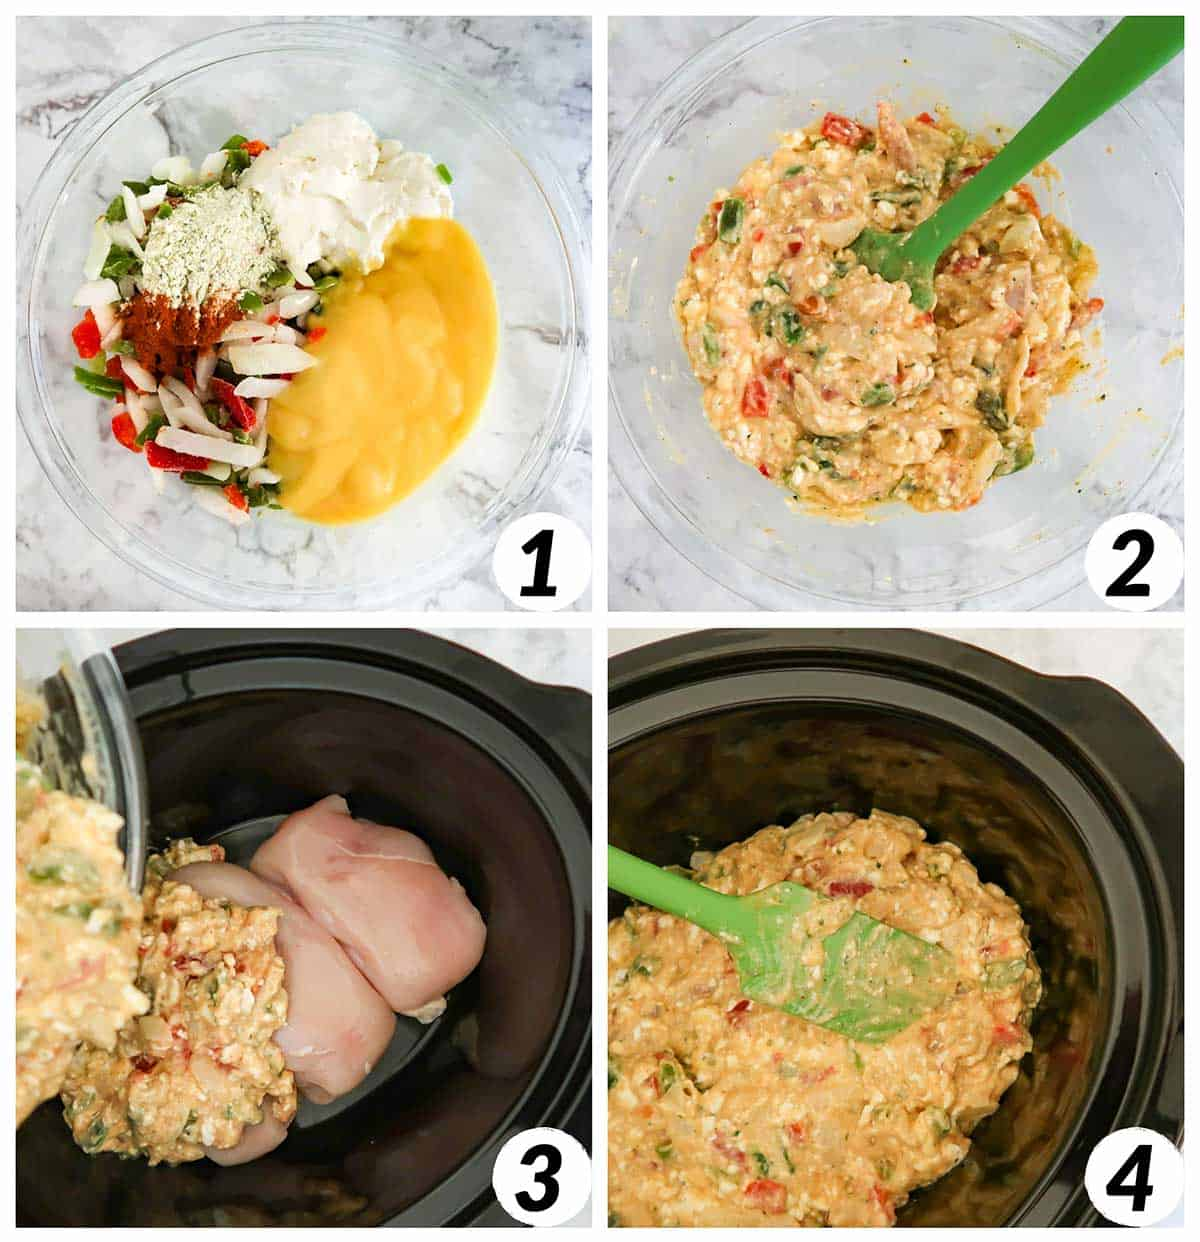 Four panel collage of process shots- mixing together ingredients and adding ingredients into the crock pot to cook.